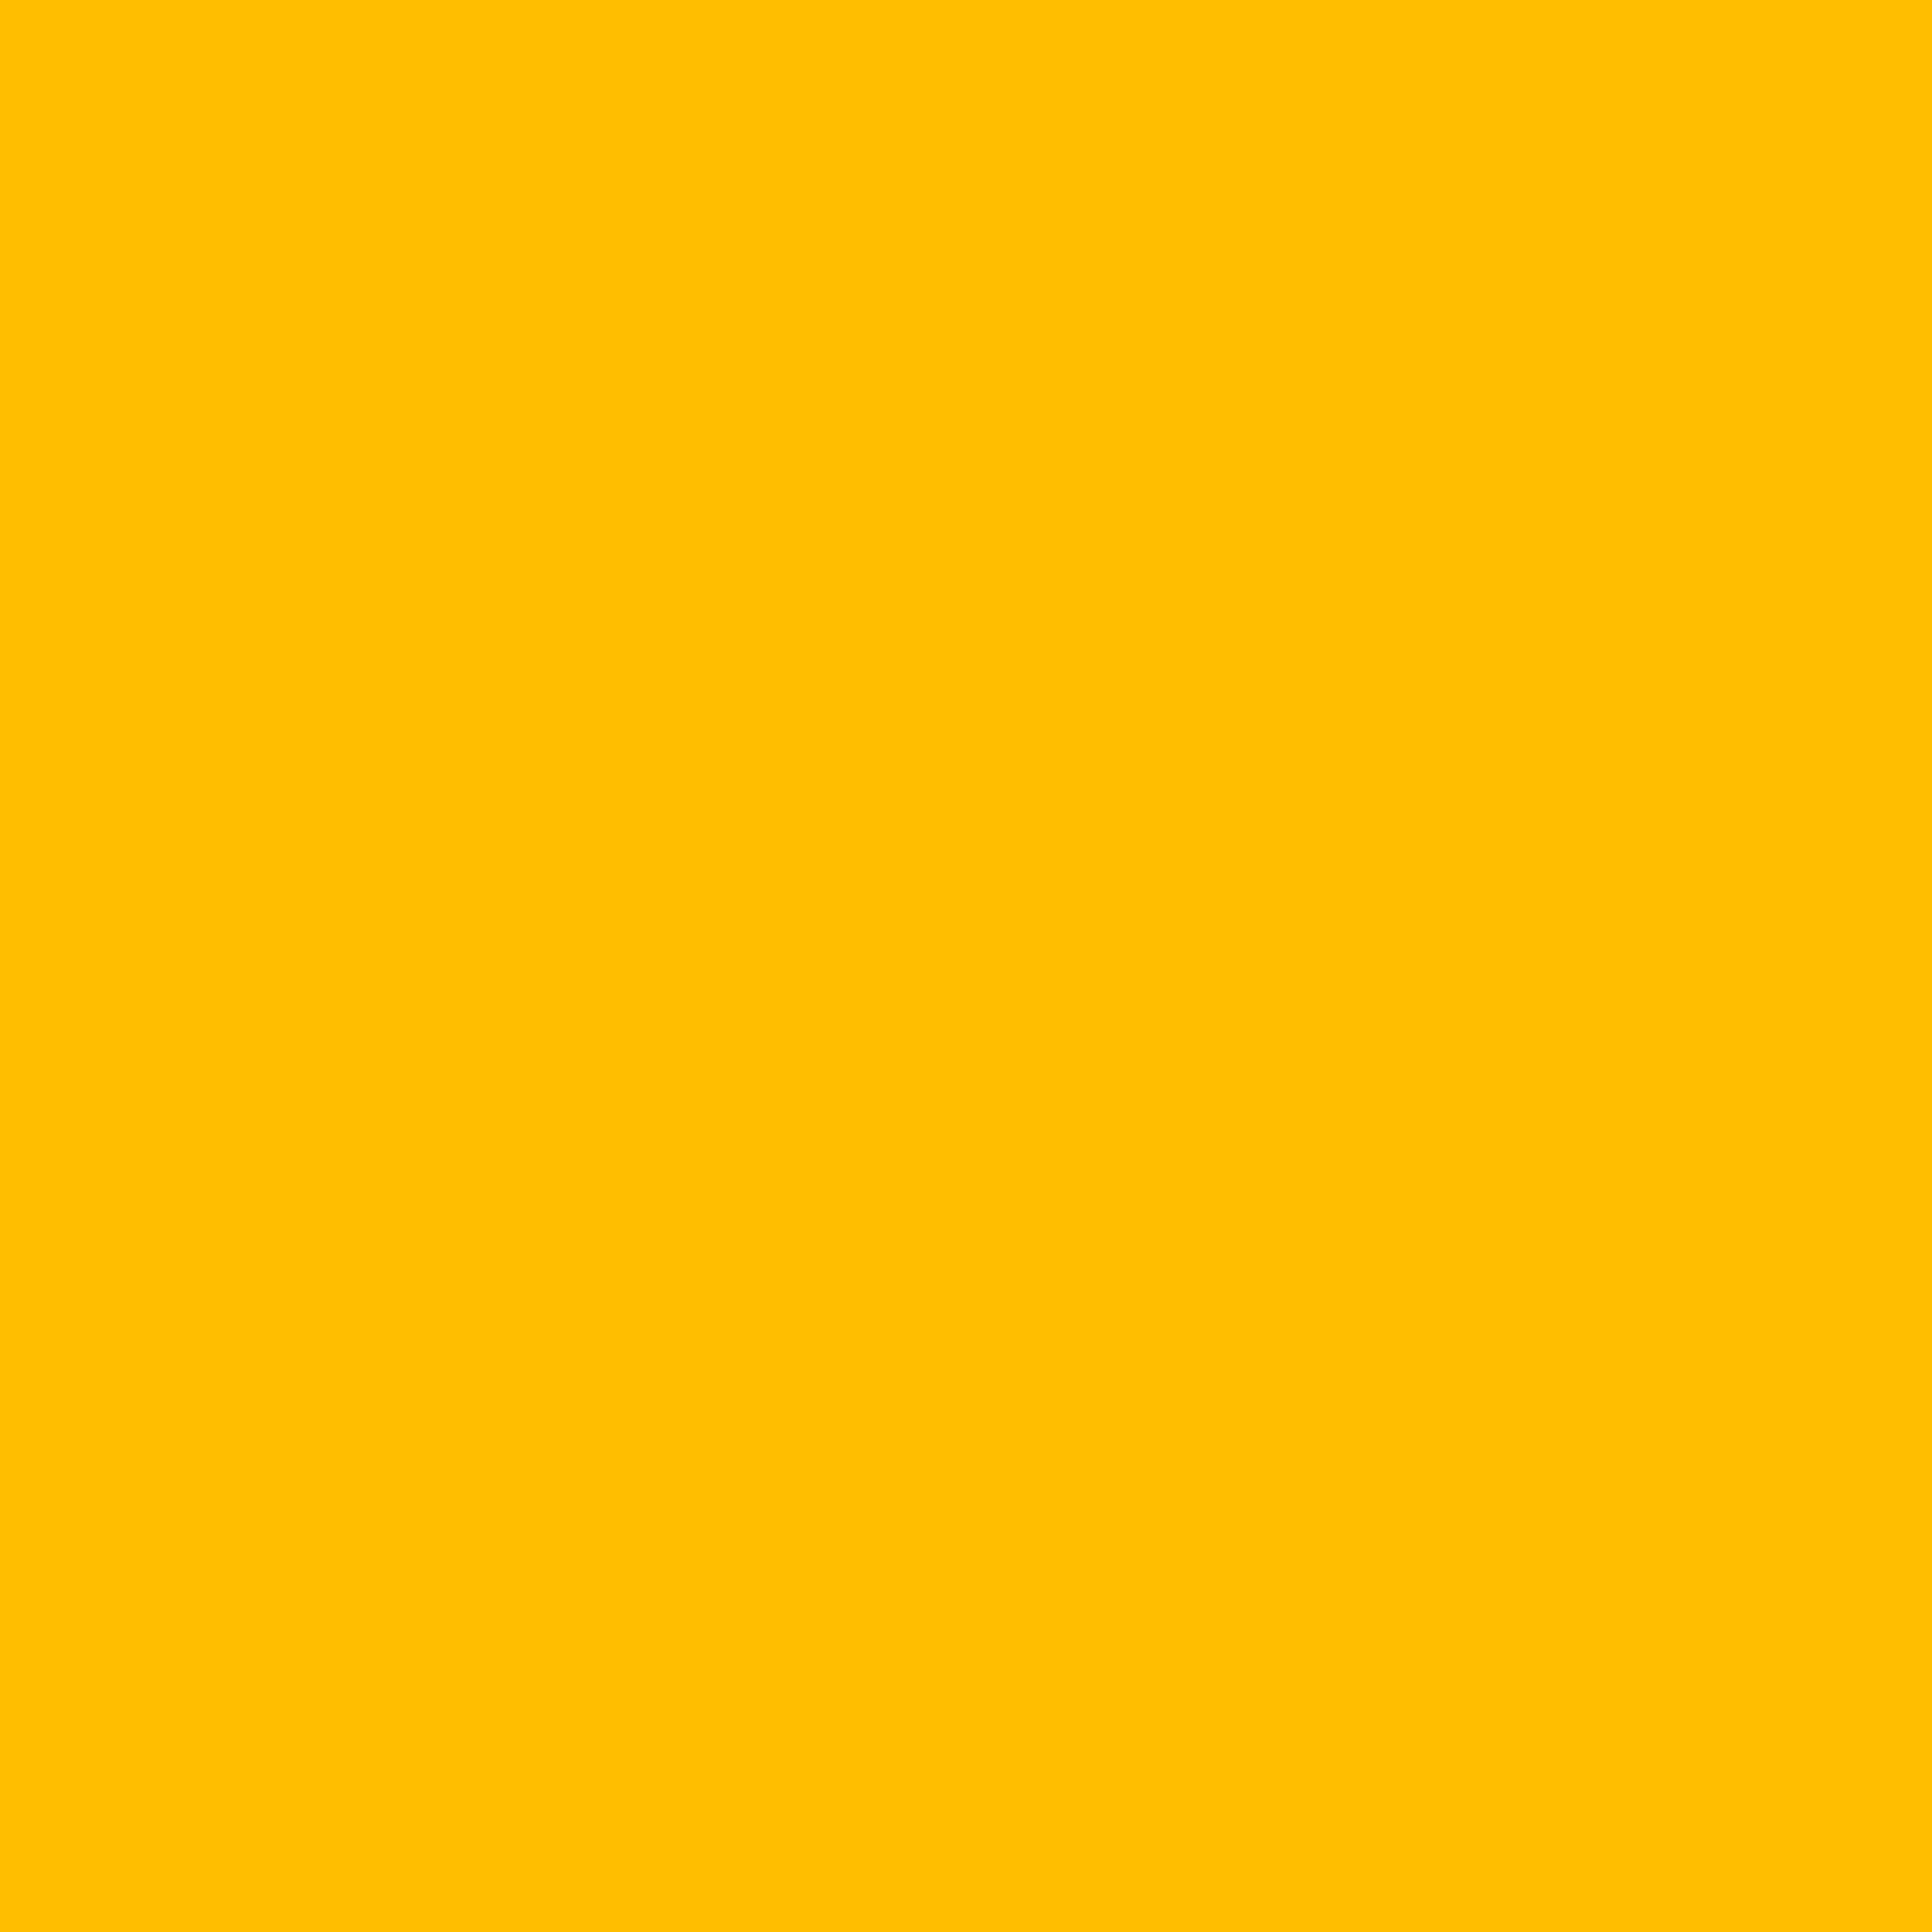 2732x2732 Amber Solid Color Background